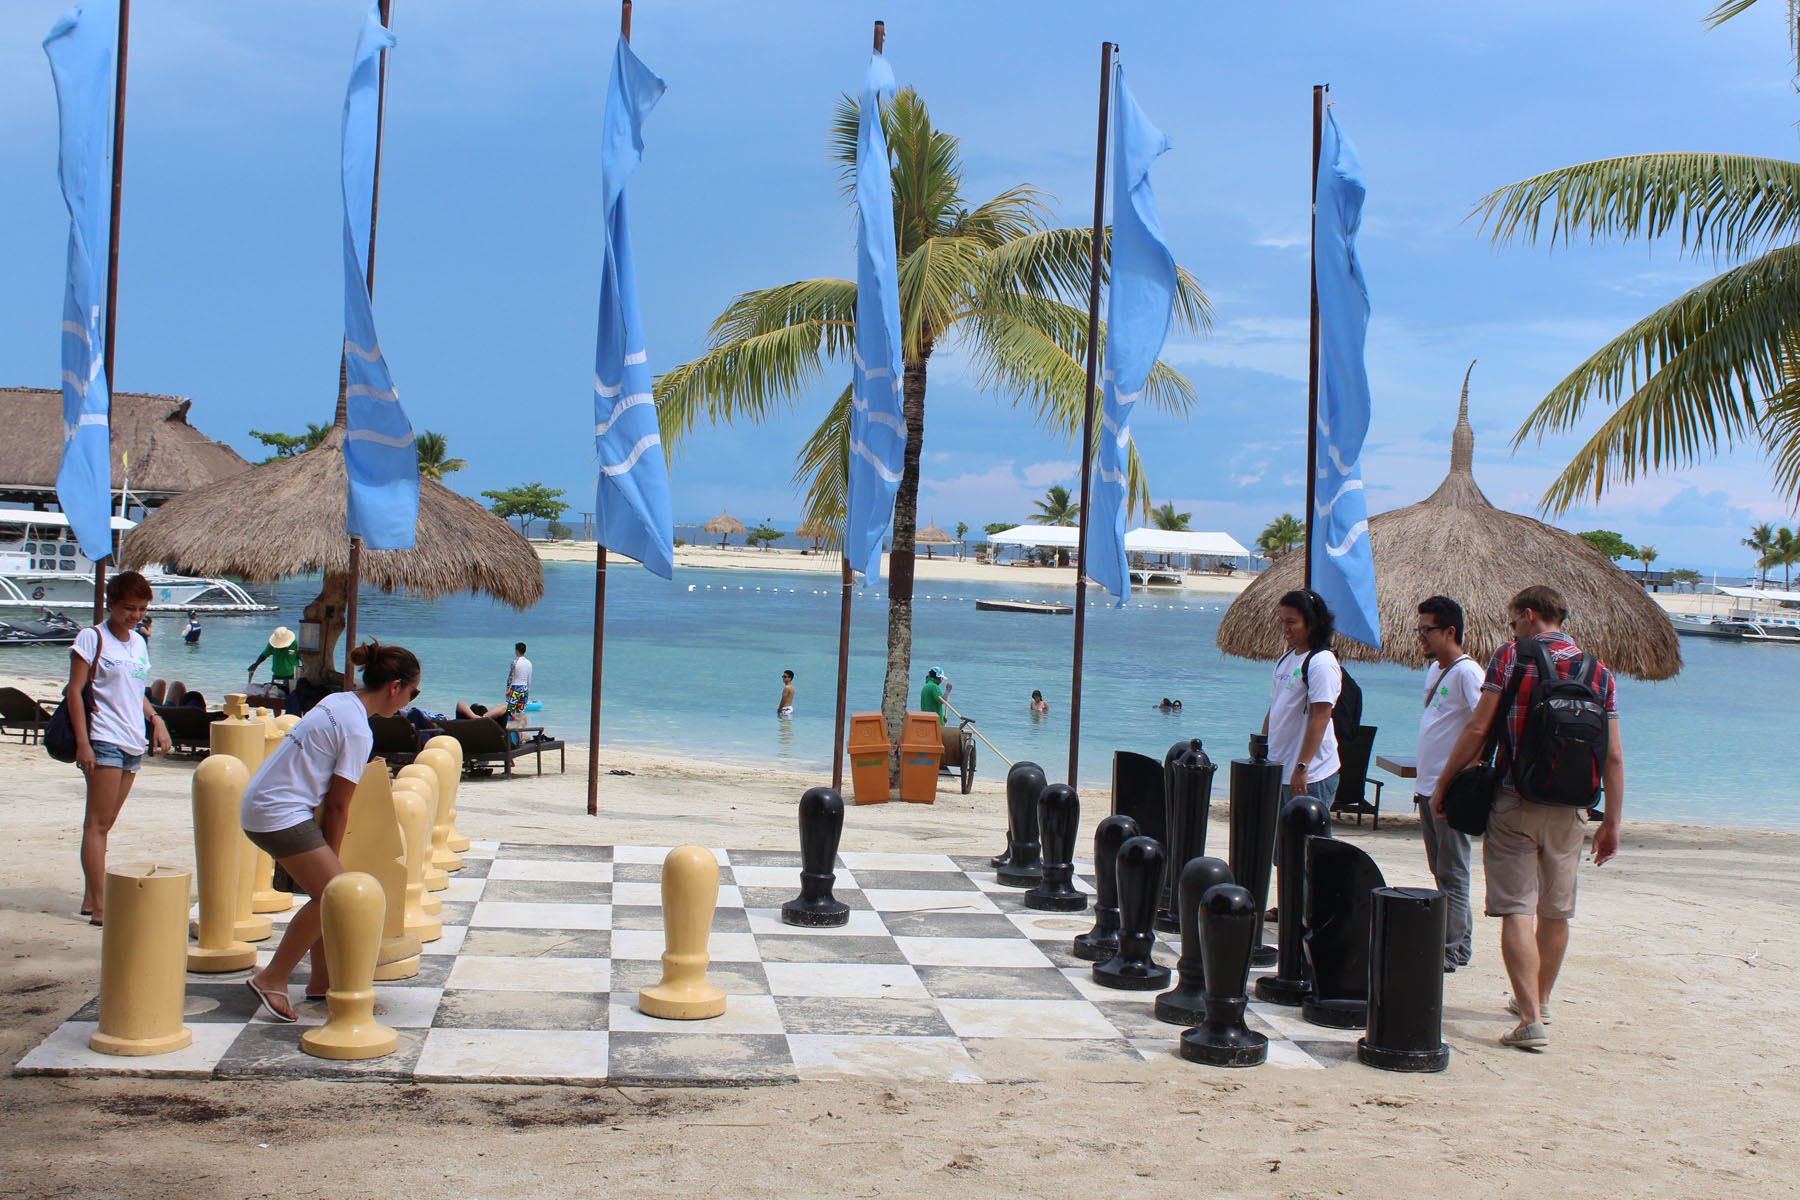 Us Playing With Their Life Sized Chess Board